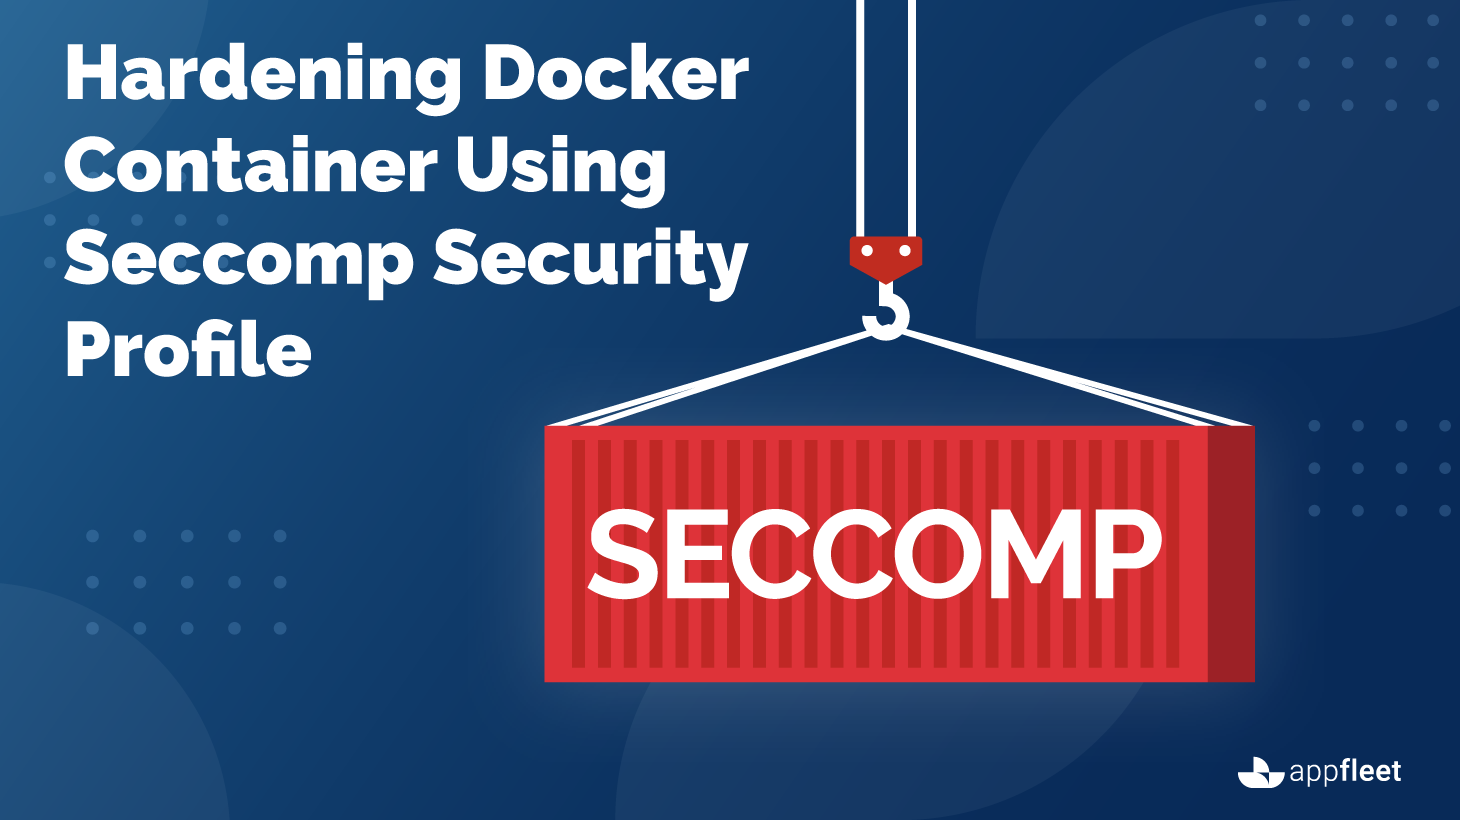 Hardening Docker Container Using Seccomp Security Profile